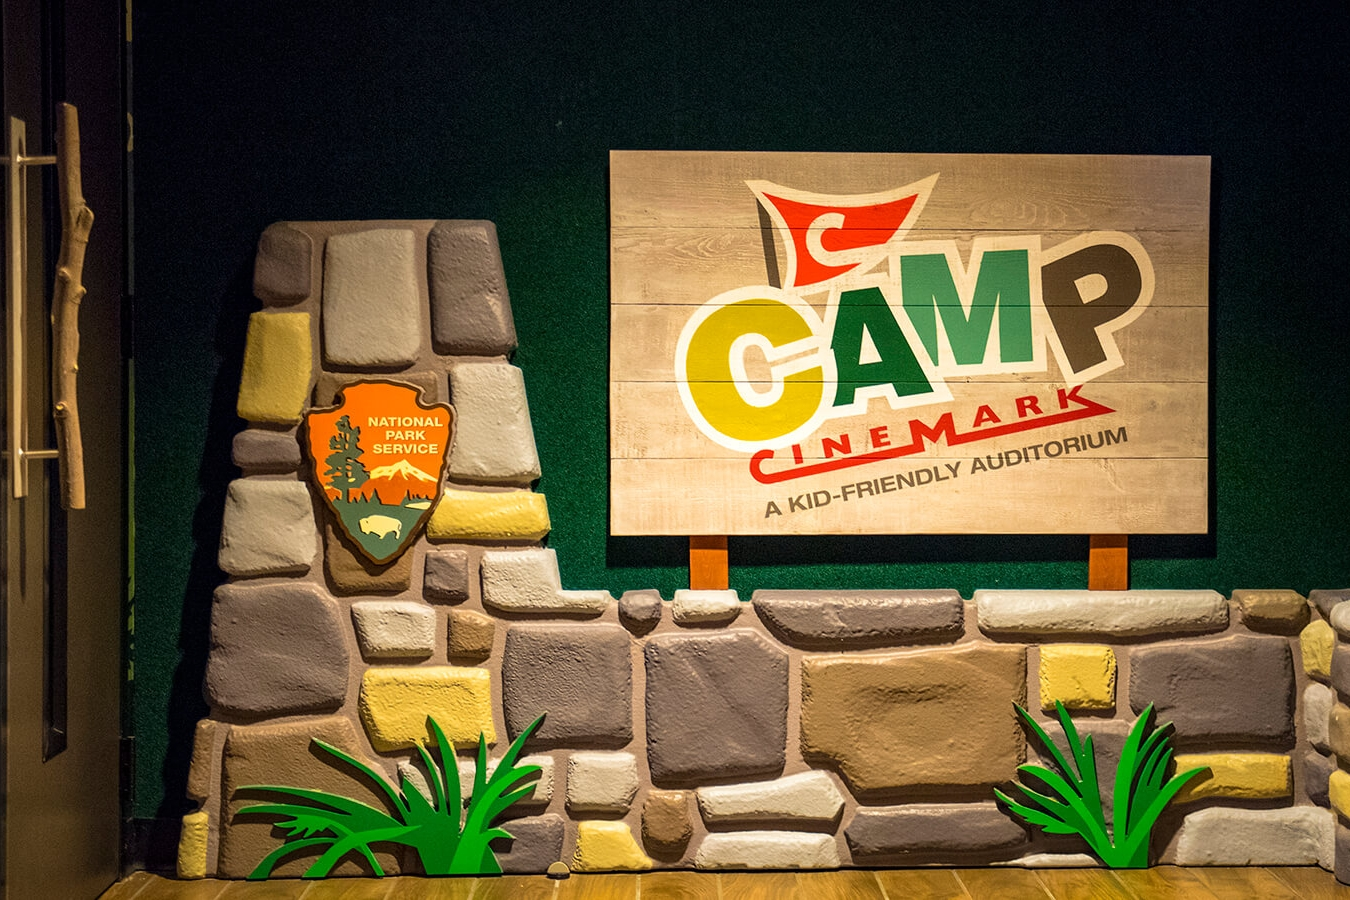 Camp Cinemark 交互式着色墙设计© Dimensional Innovation